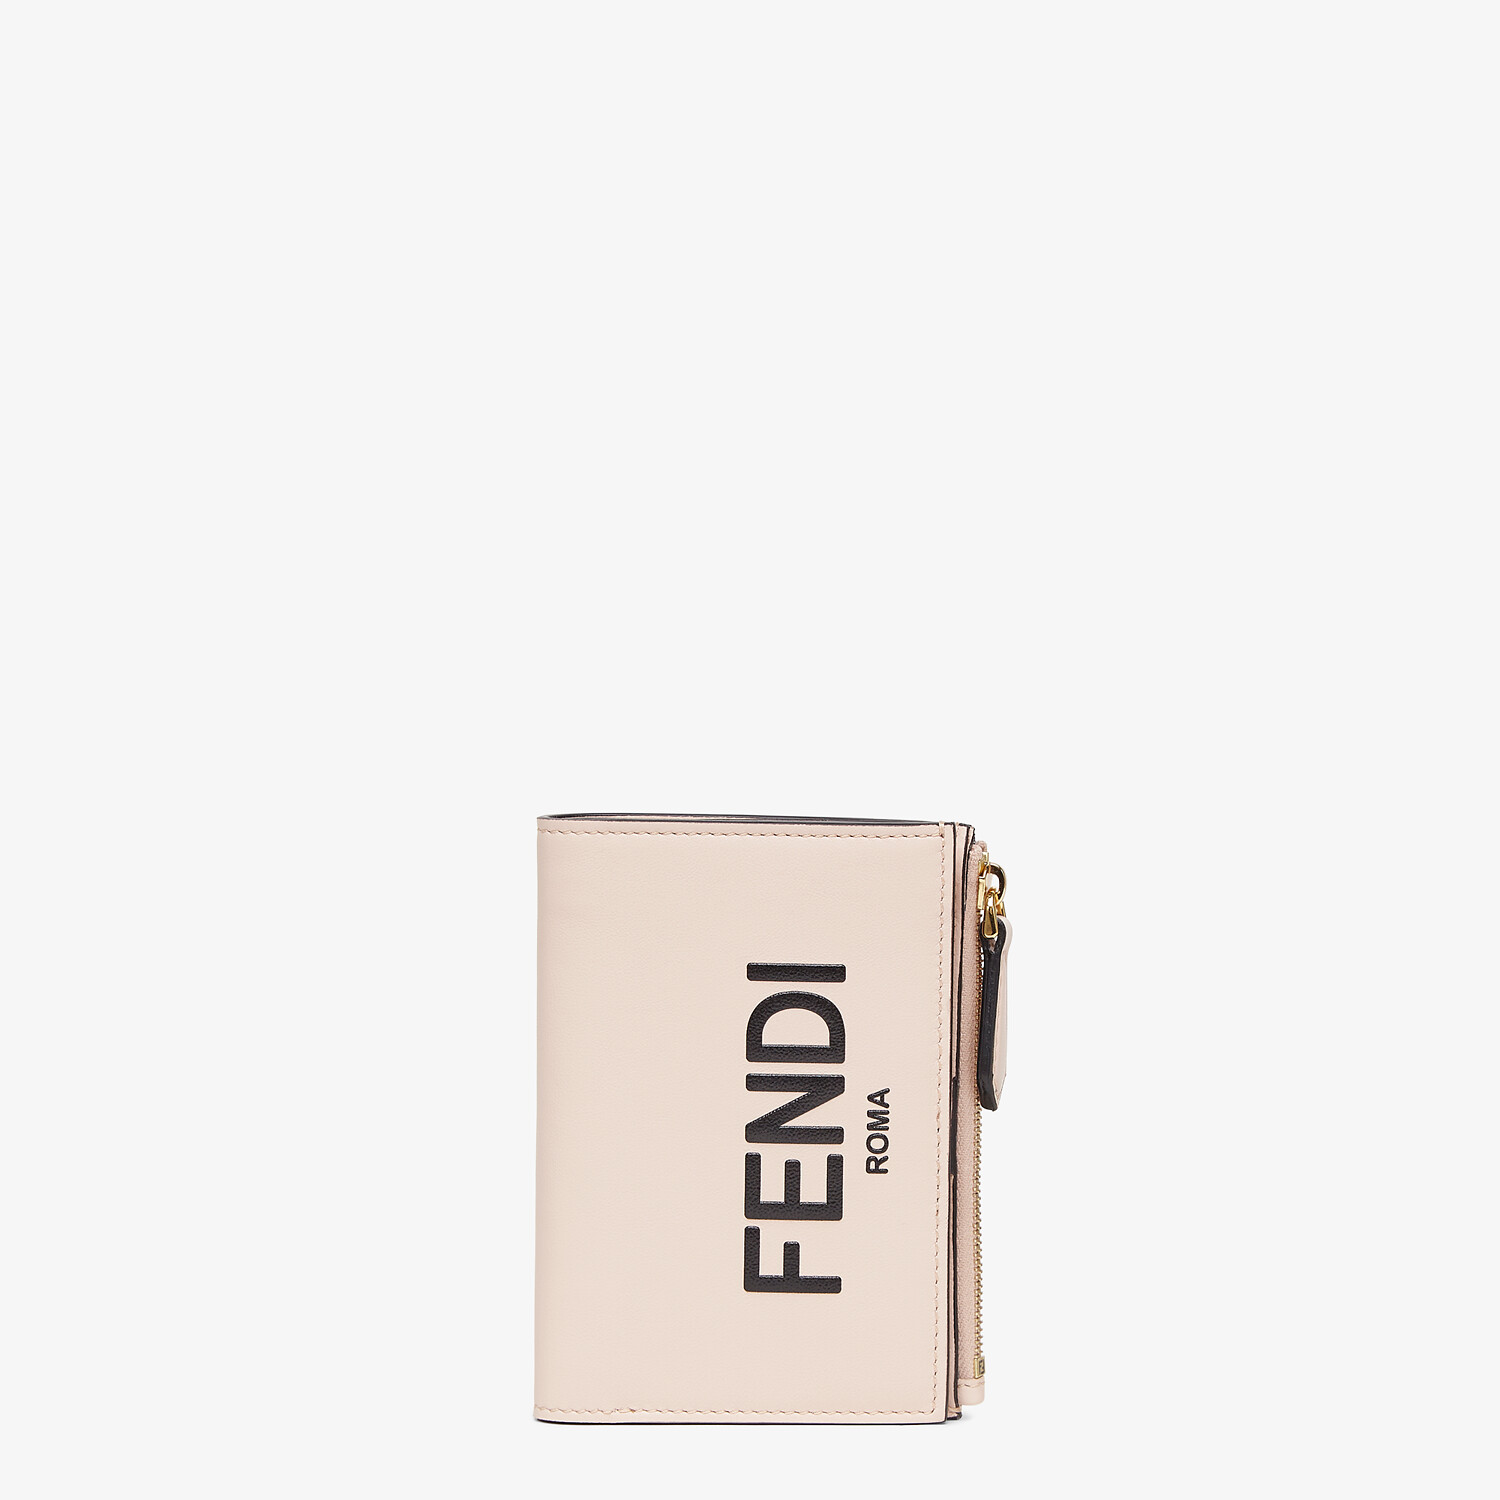 FENDI MEDIUM WALLET - Pink leather wallet - view 1 detail